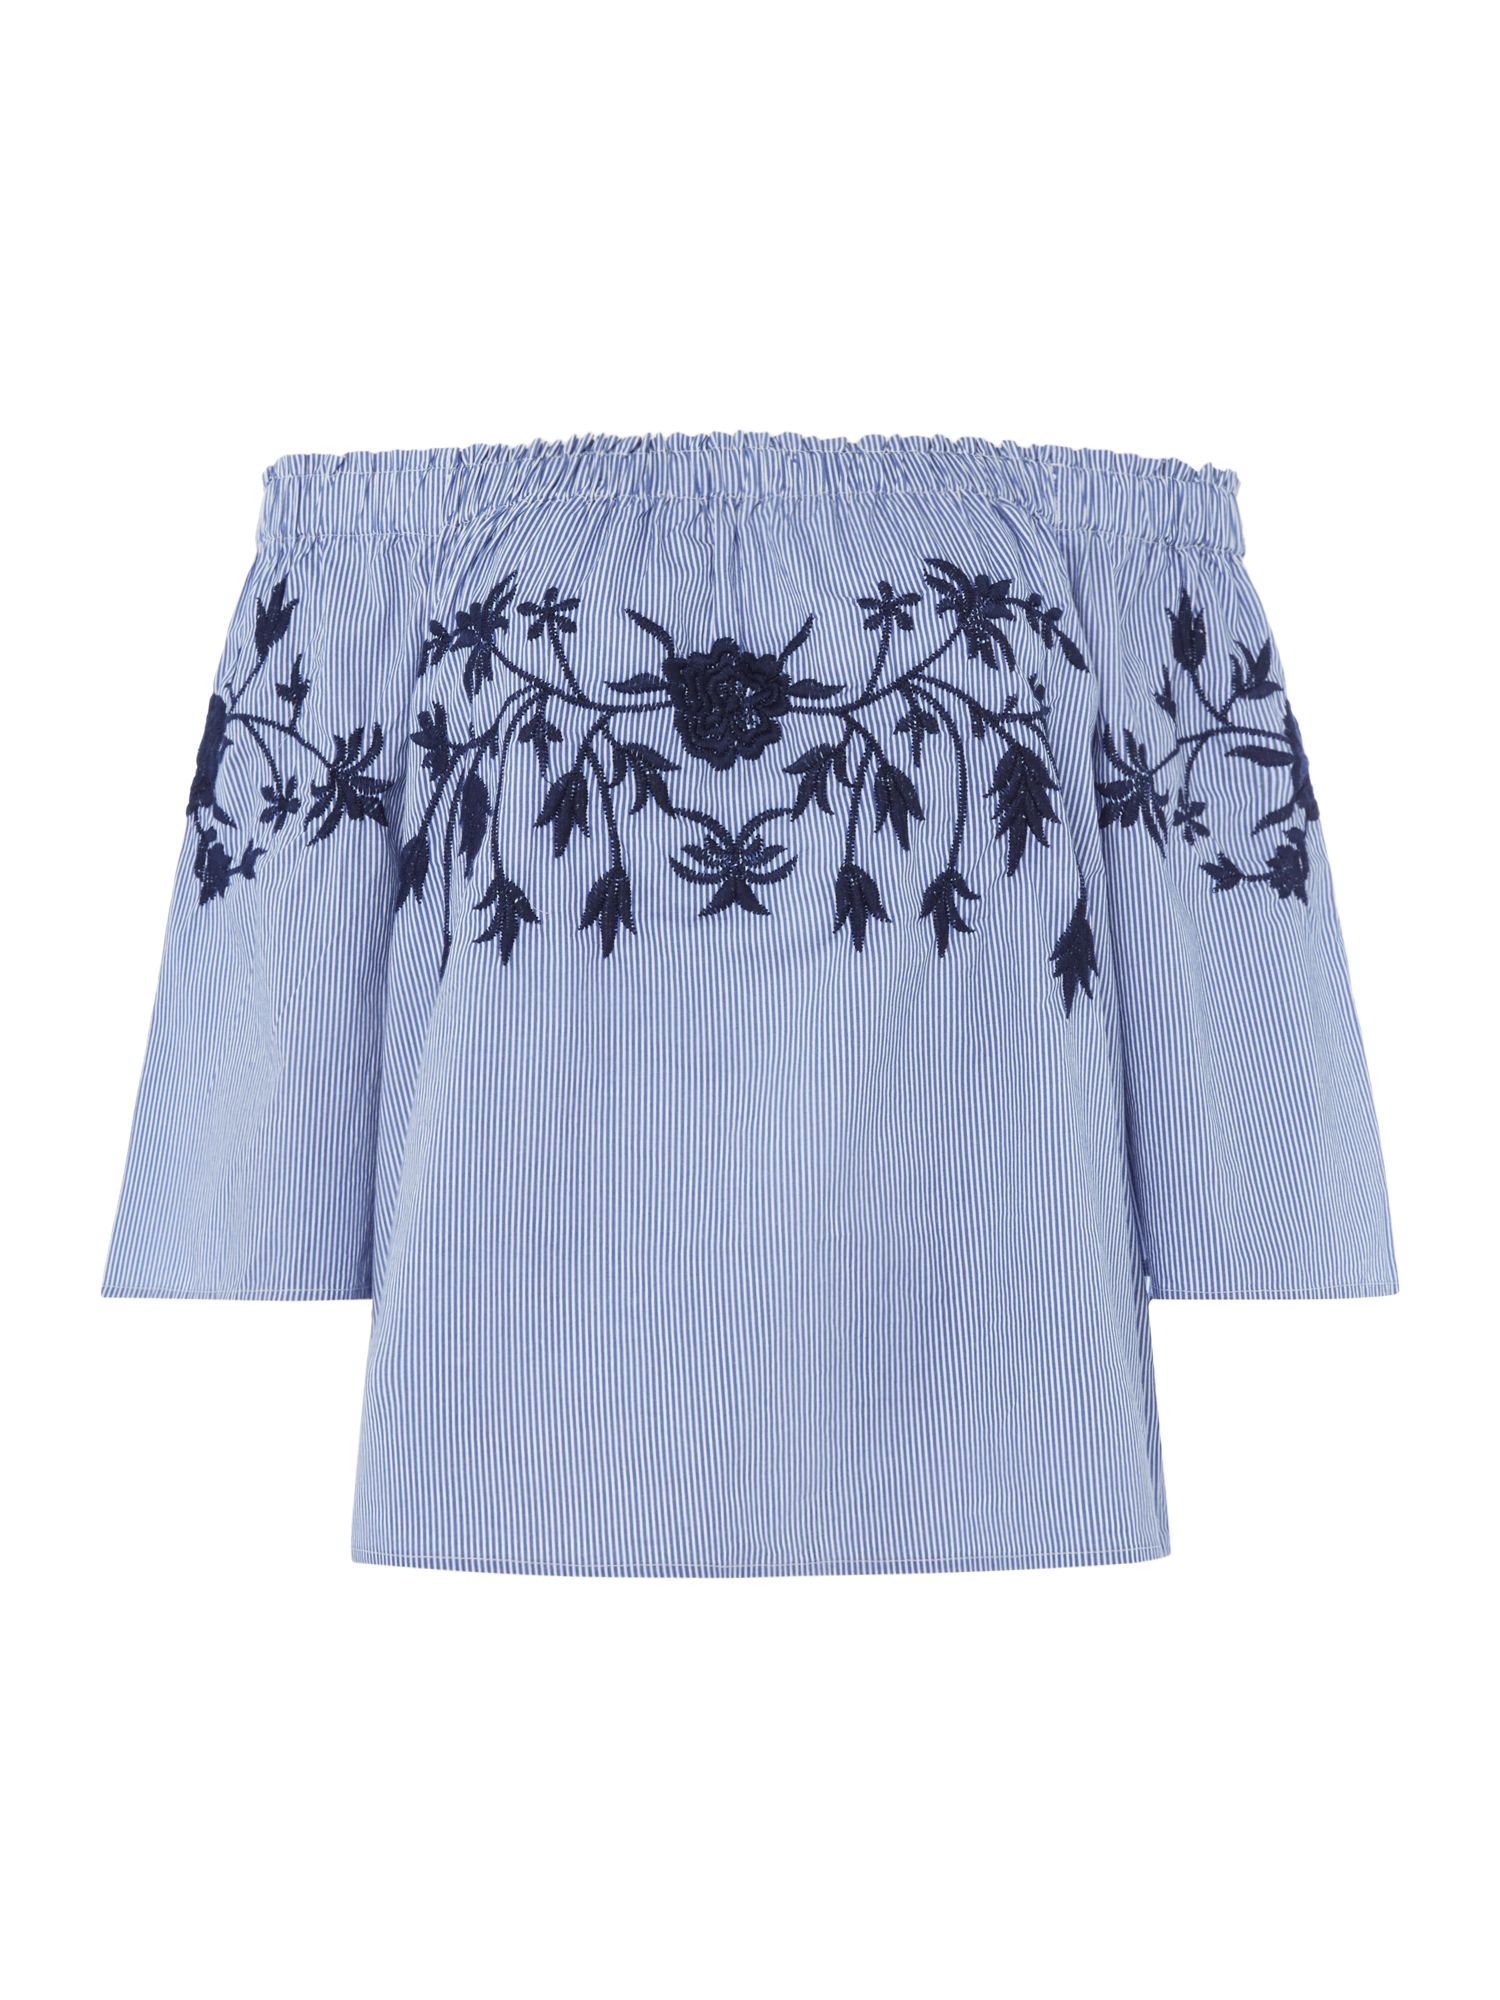 Vero Moda Off Shoulder 3/4 sleeves midi top, Light Blue